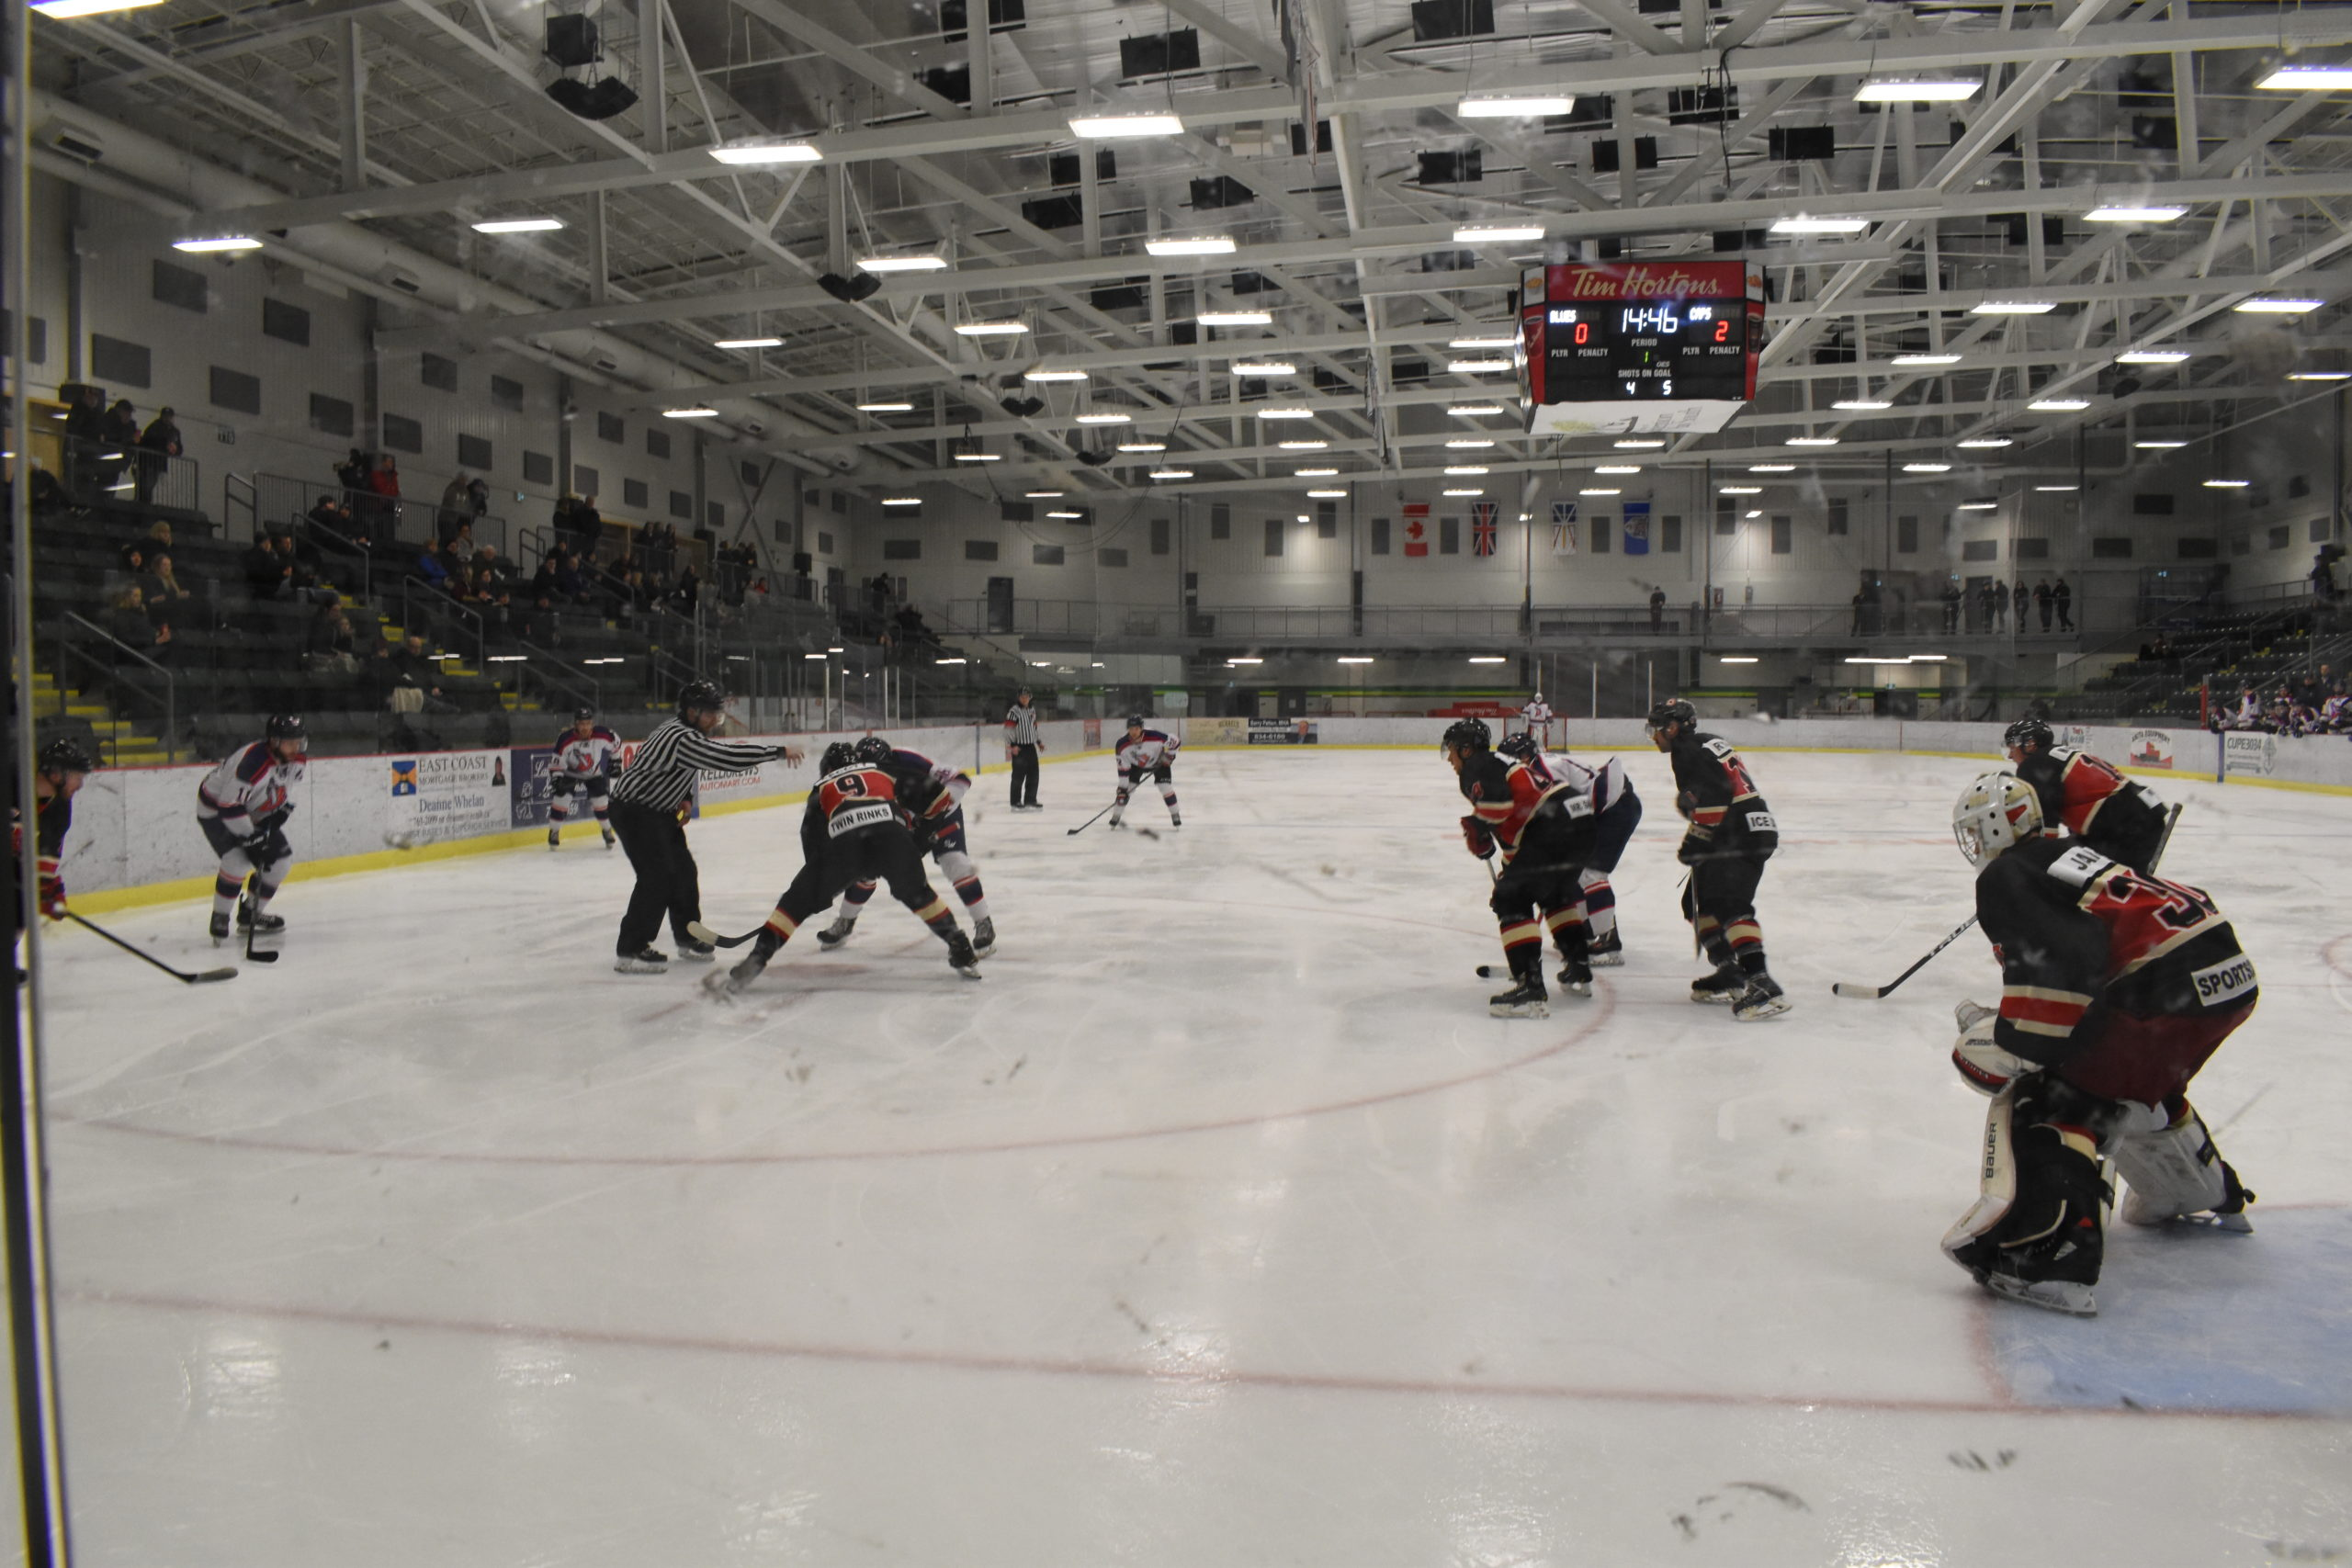 An offensive zone faceoff for the C.B.S Blues after falling 2-0 against the St. Johns Caps.